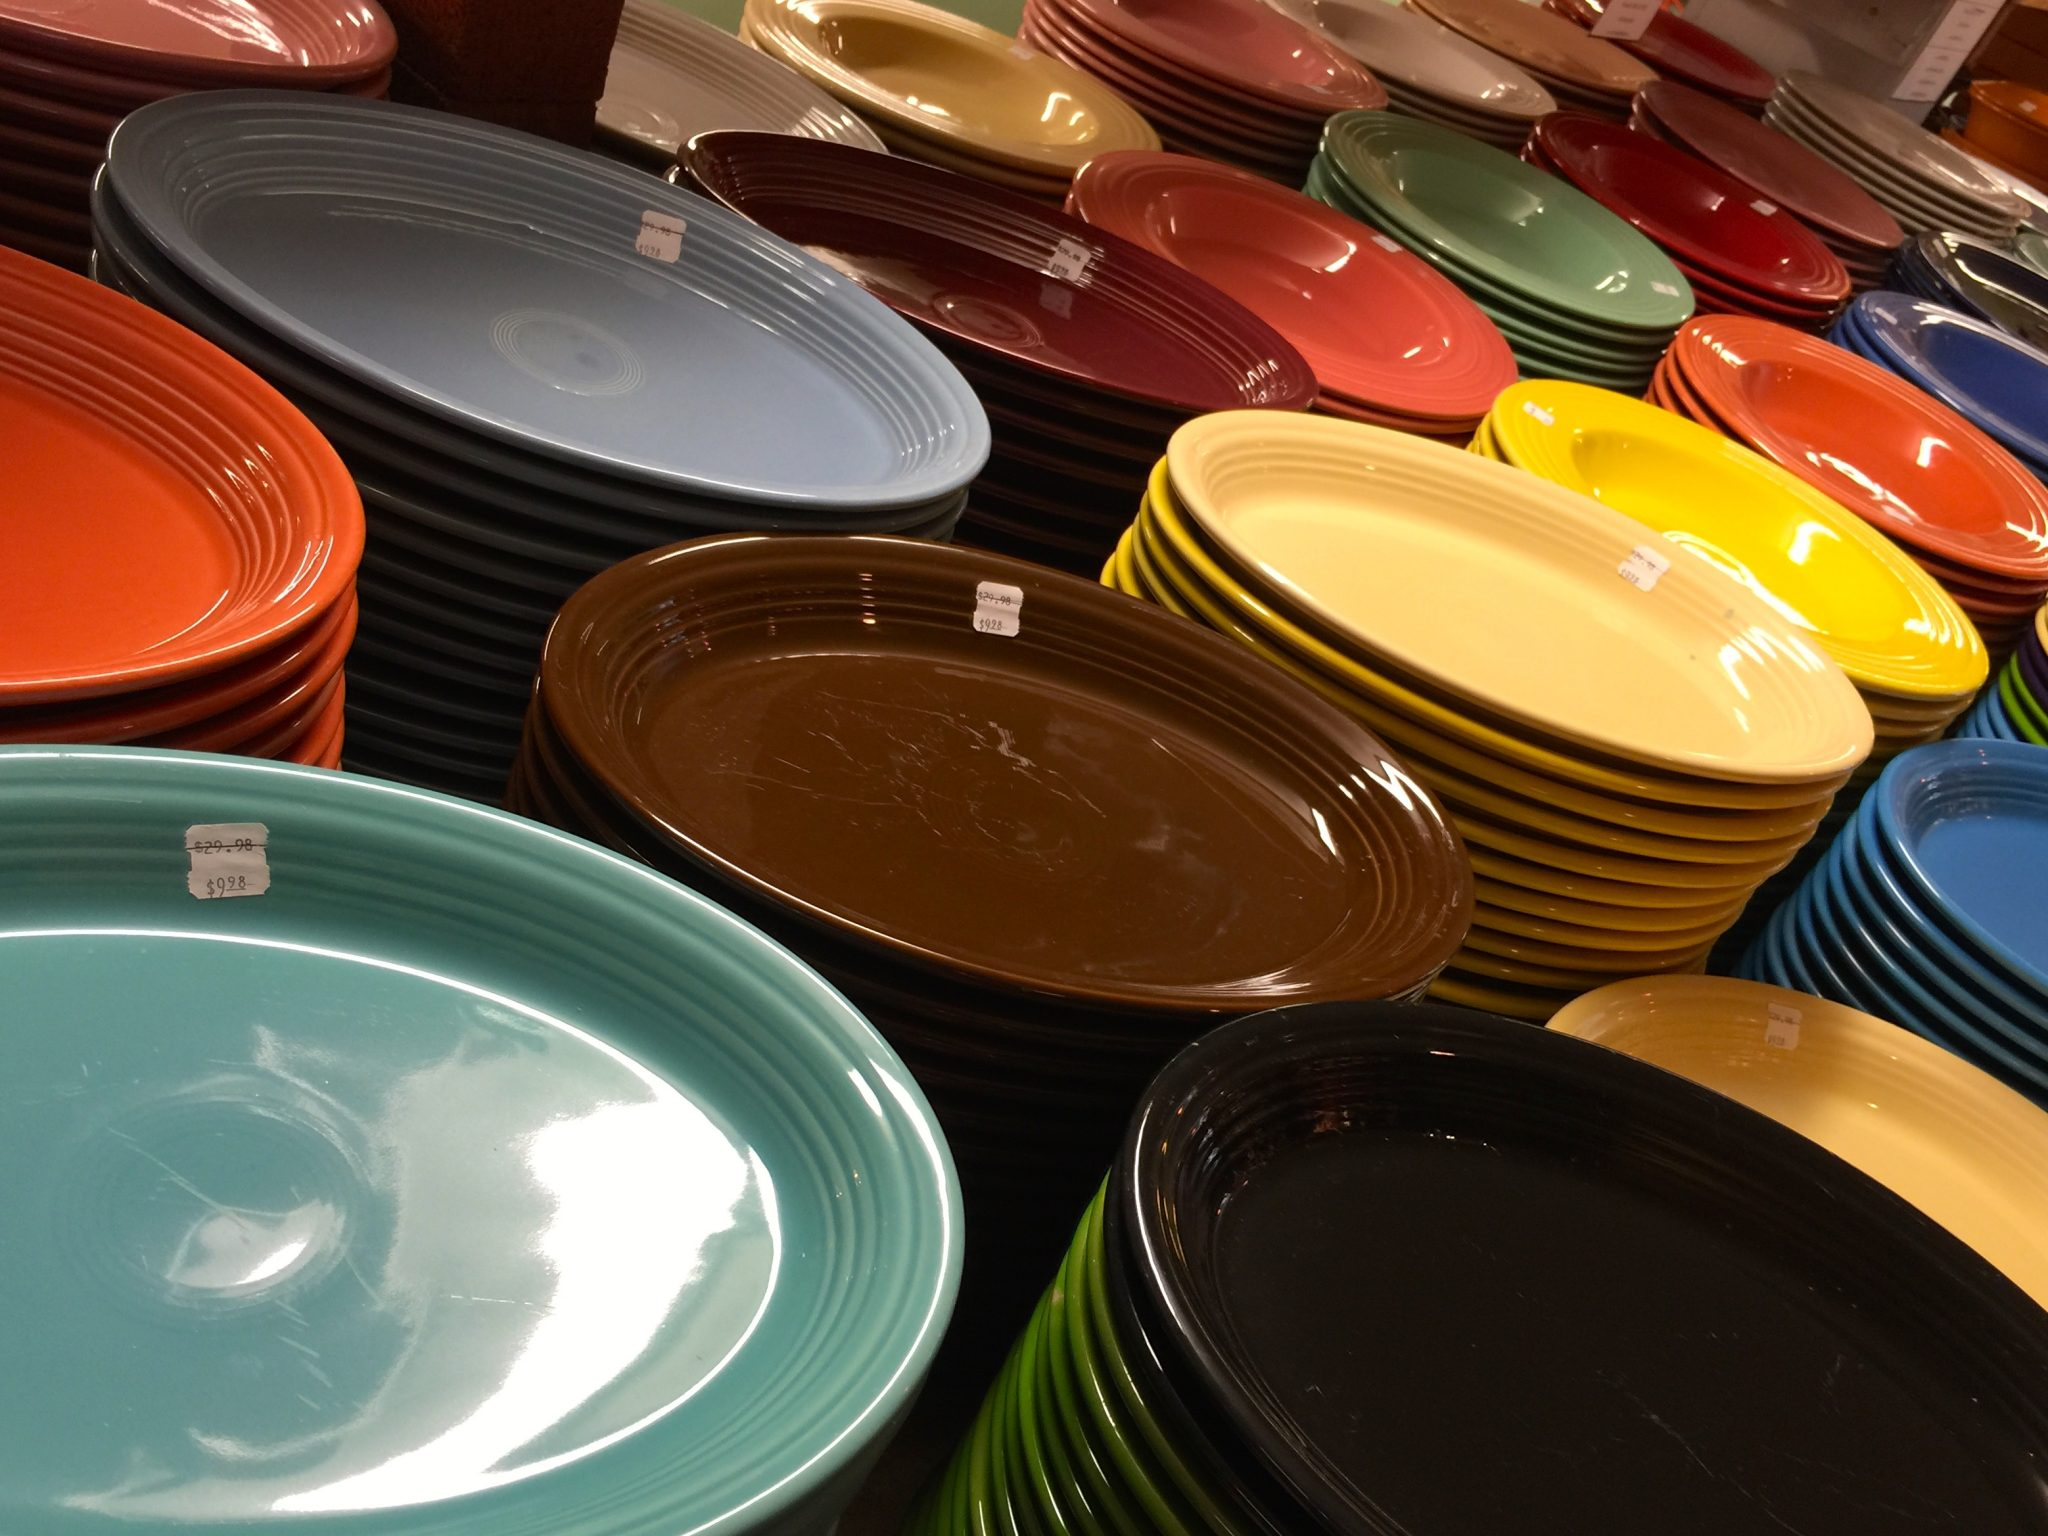 Fiesta Ware ©The_Open_Suitcase_LLC